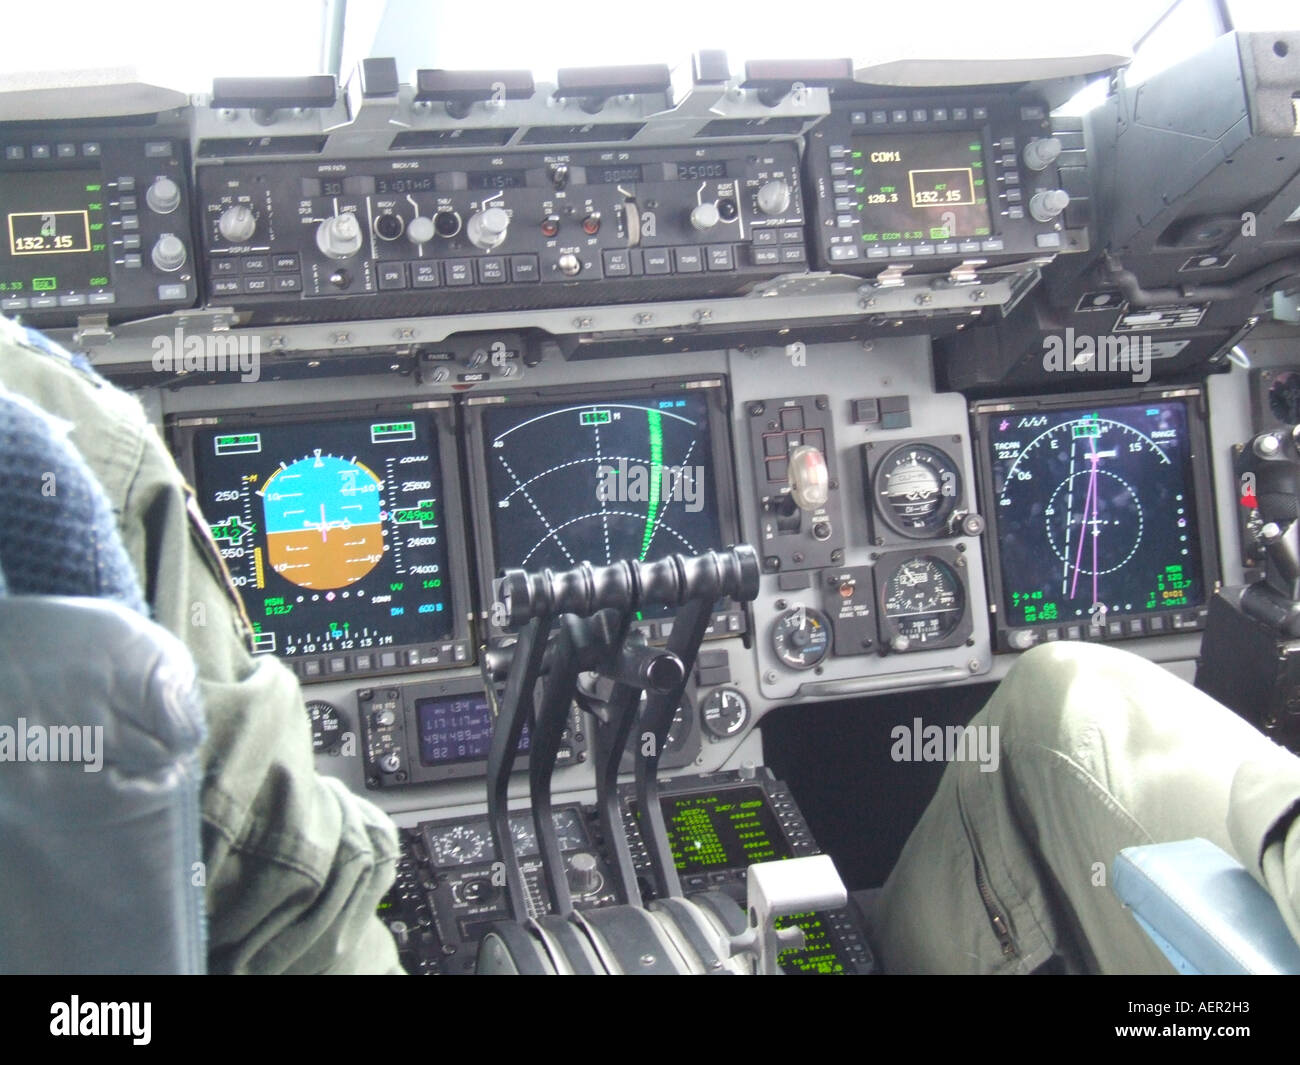 C 130 Interior Pictures Images amp Photos  Photobucket